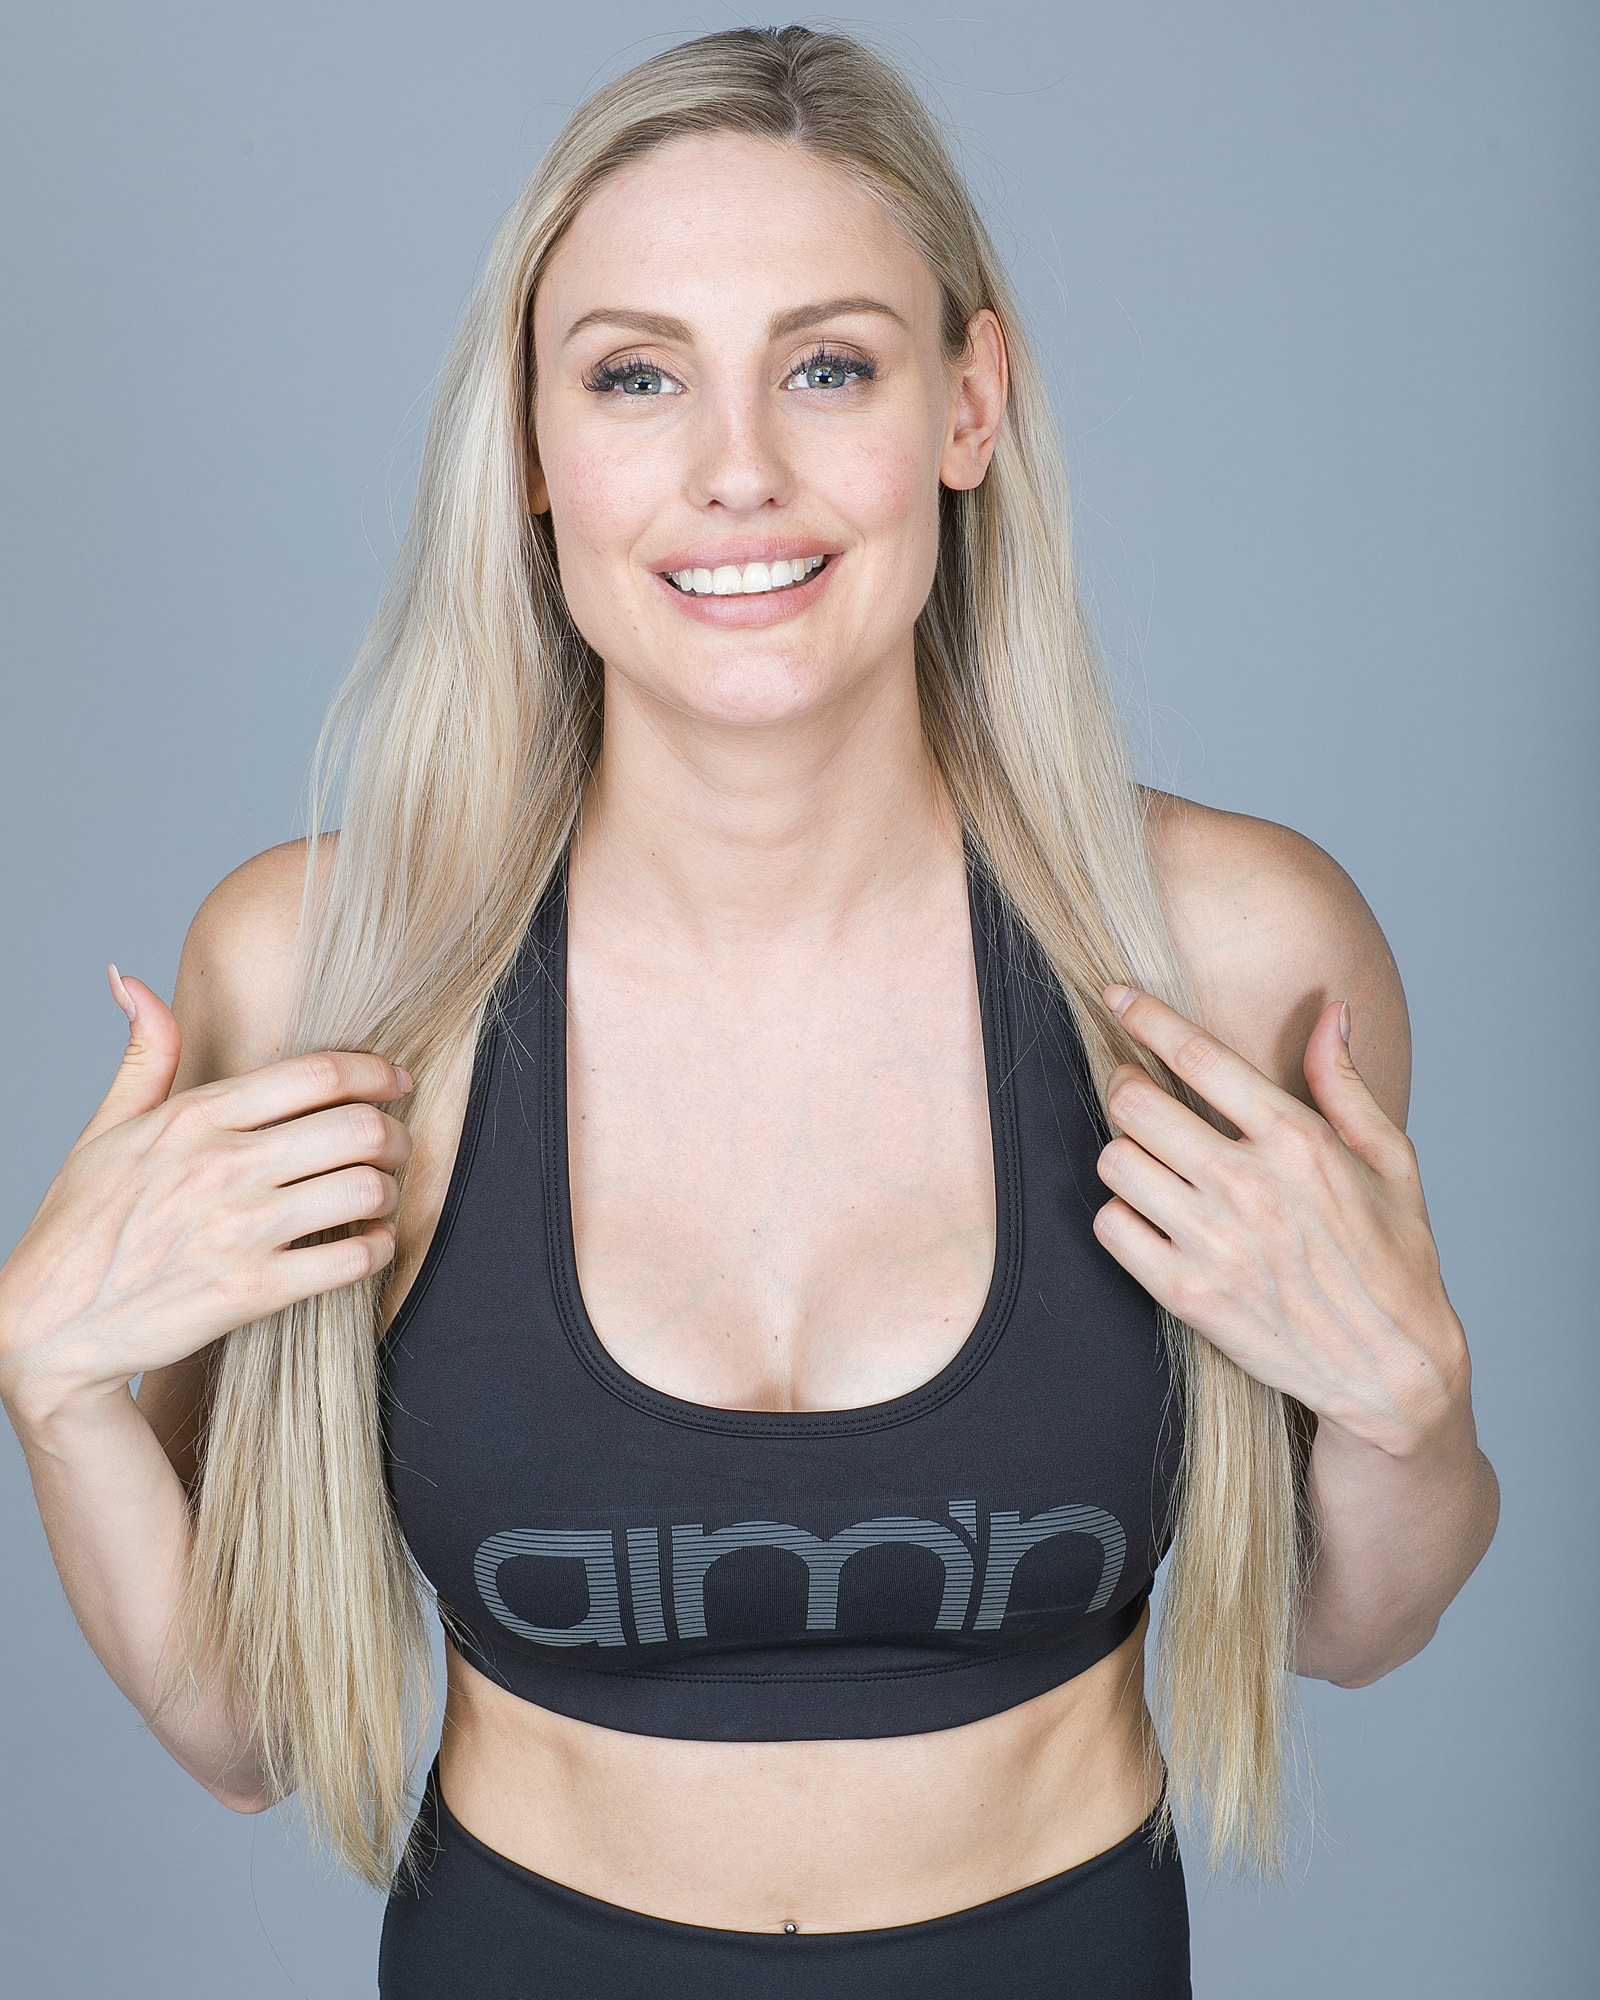 Aim'n Black Reflective Bra 18030005 b